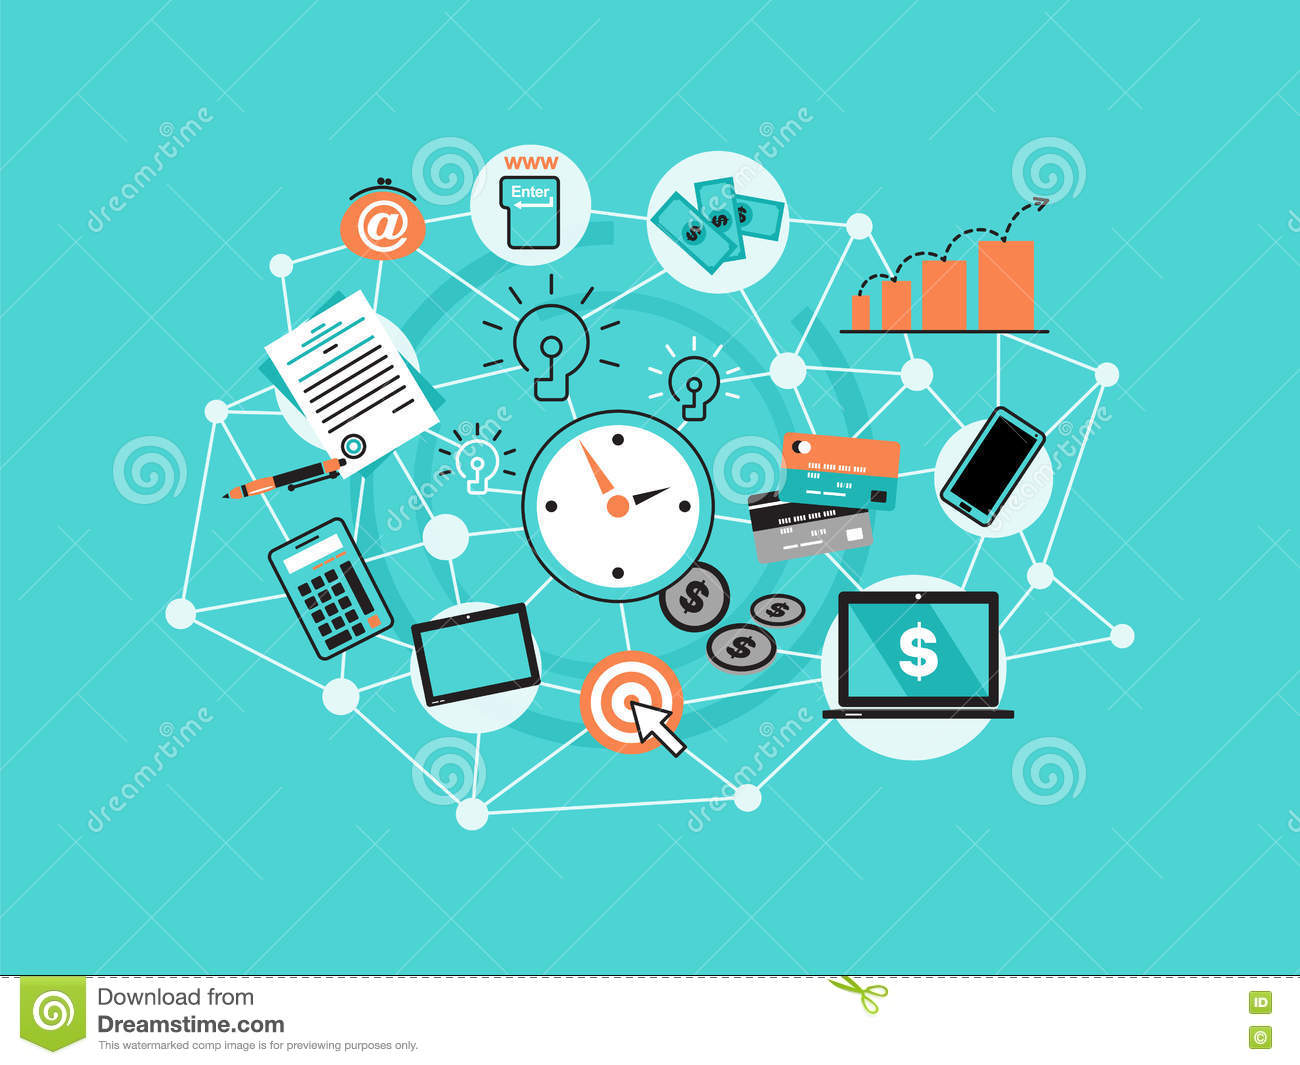 Modern flat thin line design vector illustration, infographic concept with icons of online business, internet marketing idea